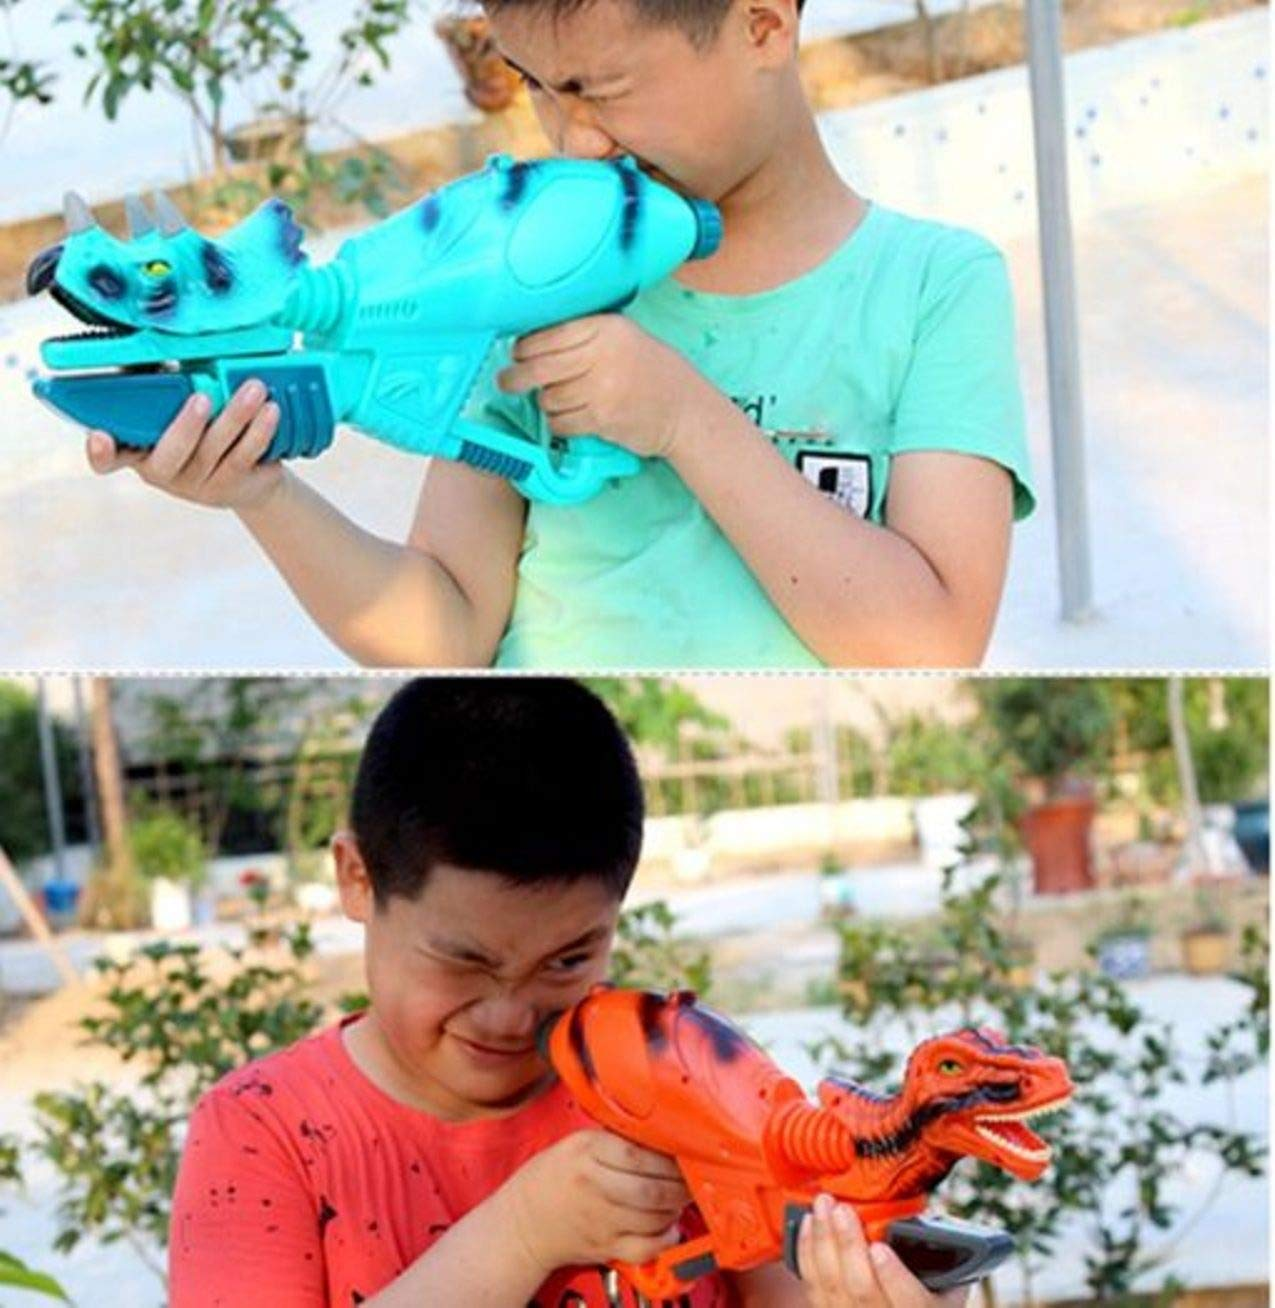 5billion Holiday Fashion Plastic Beach Outdoor Shooter Toys Dinosaur Water Gun Summer Pools Super Cannon Water Kid Toys by 5billion (Image #3)